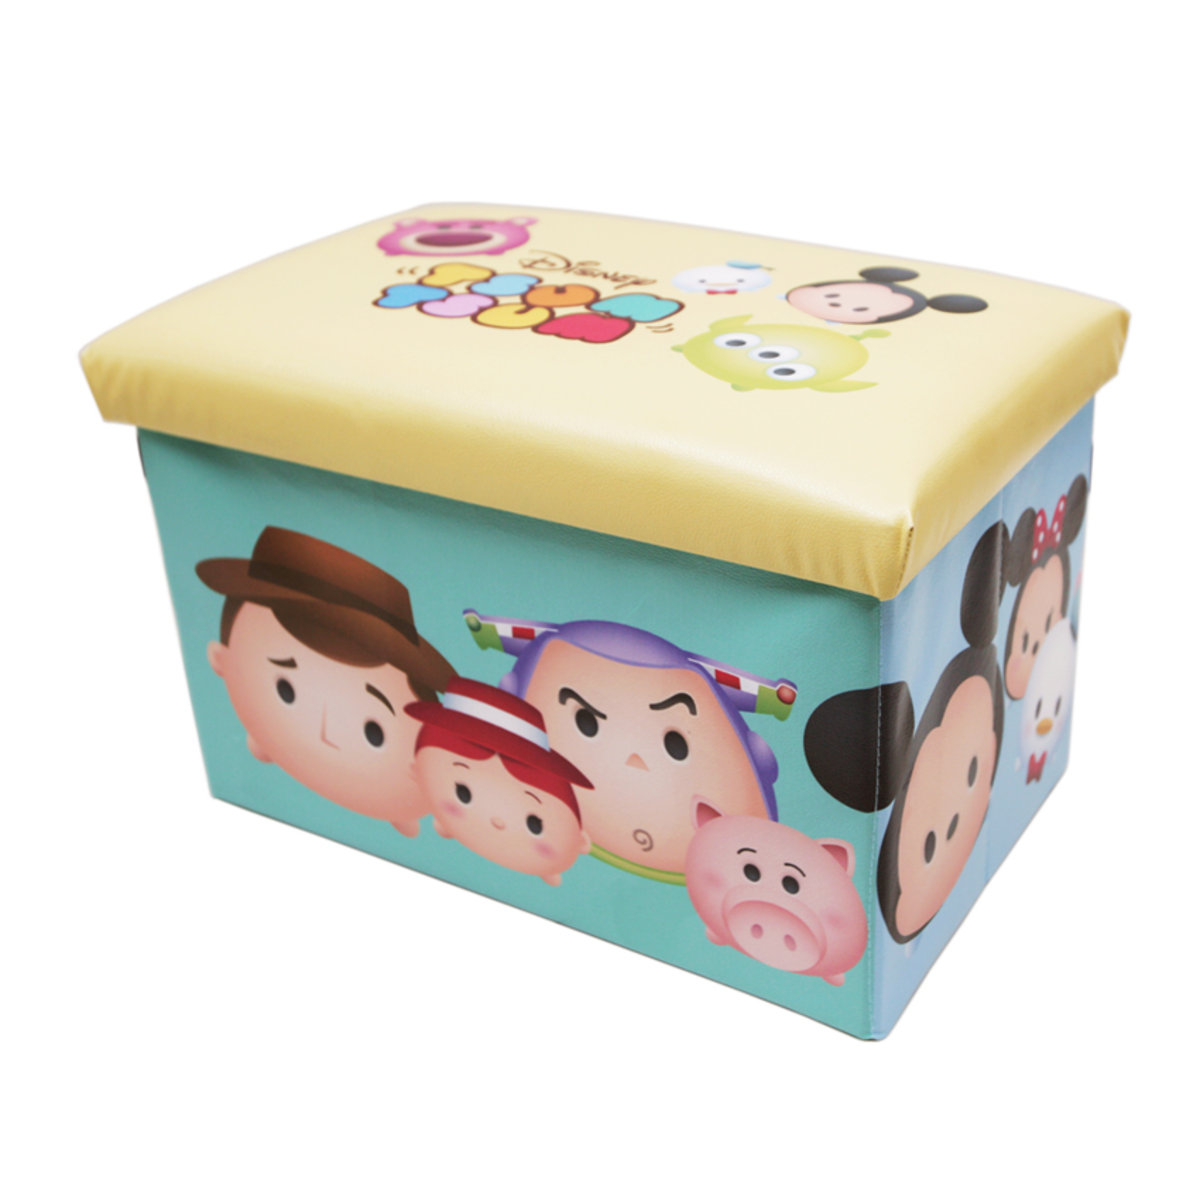 Stool Storage Box (Licensed by Disney)